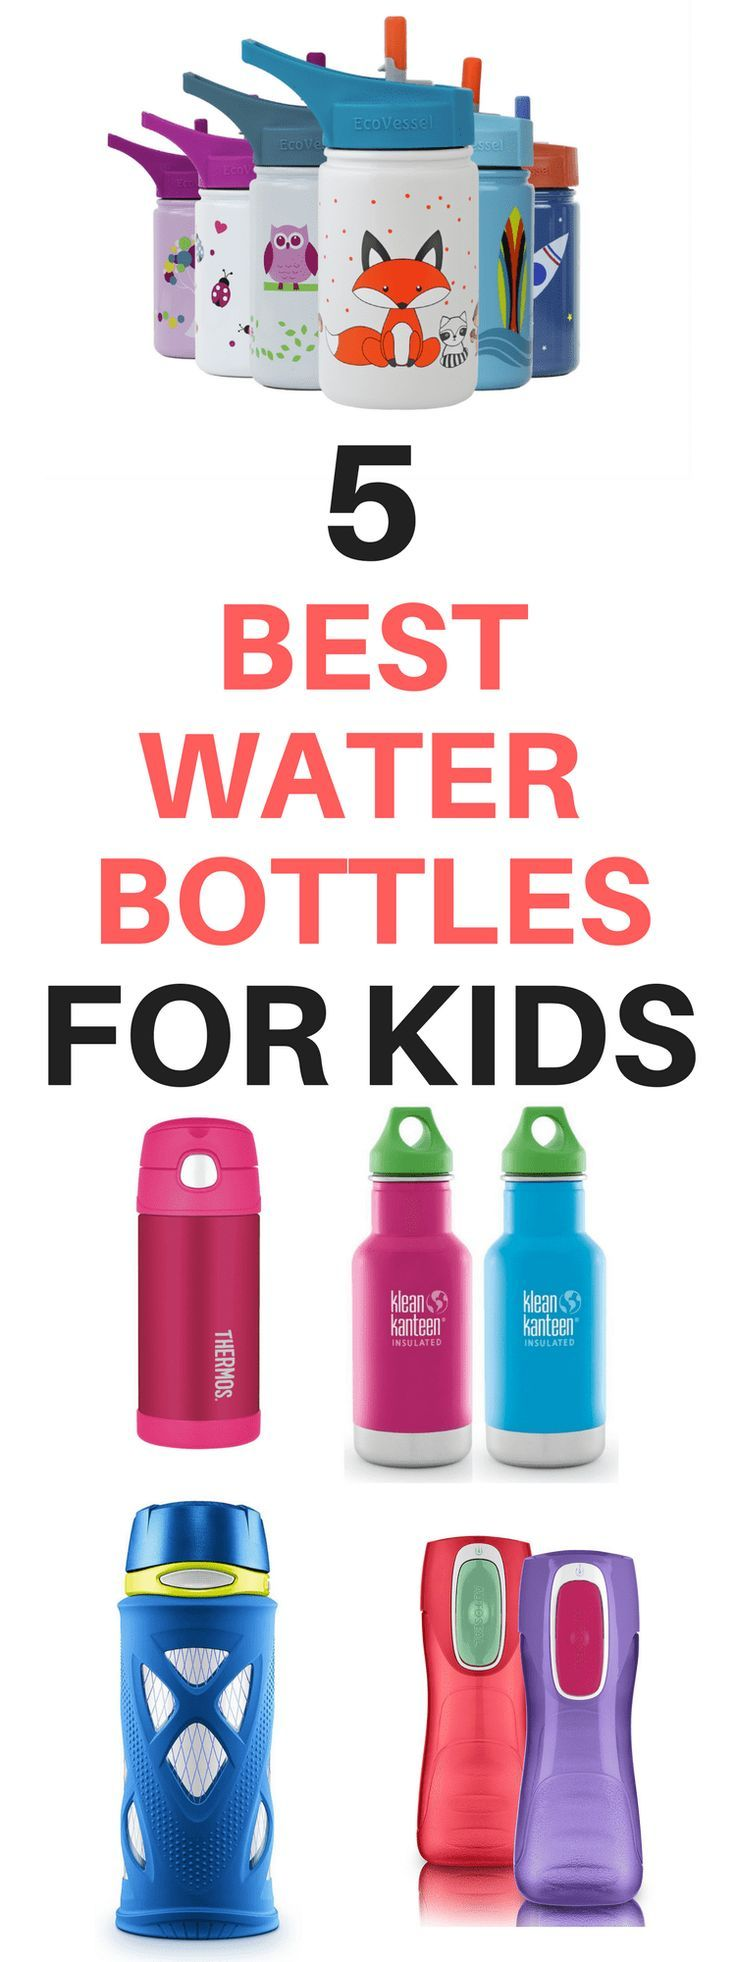 While you are thinking of ways to pack all the school lunch ideas you can think of, don't forget to find a good water bottle for kids, too. We've gathered the best kids water bottles in one place so you'll know the best water bottles to keep drinks cold or hot for lunch time. #BackToSchool #SchoolLunch #Back2School